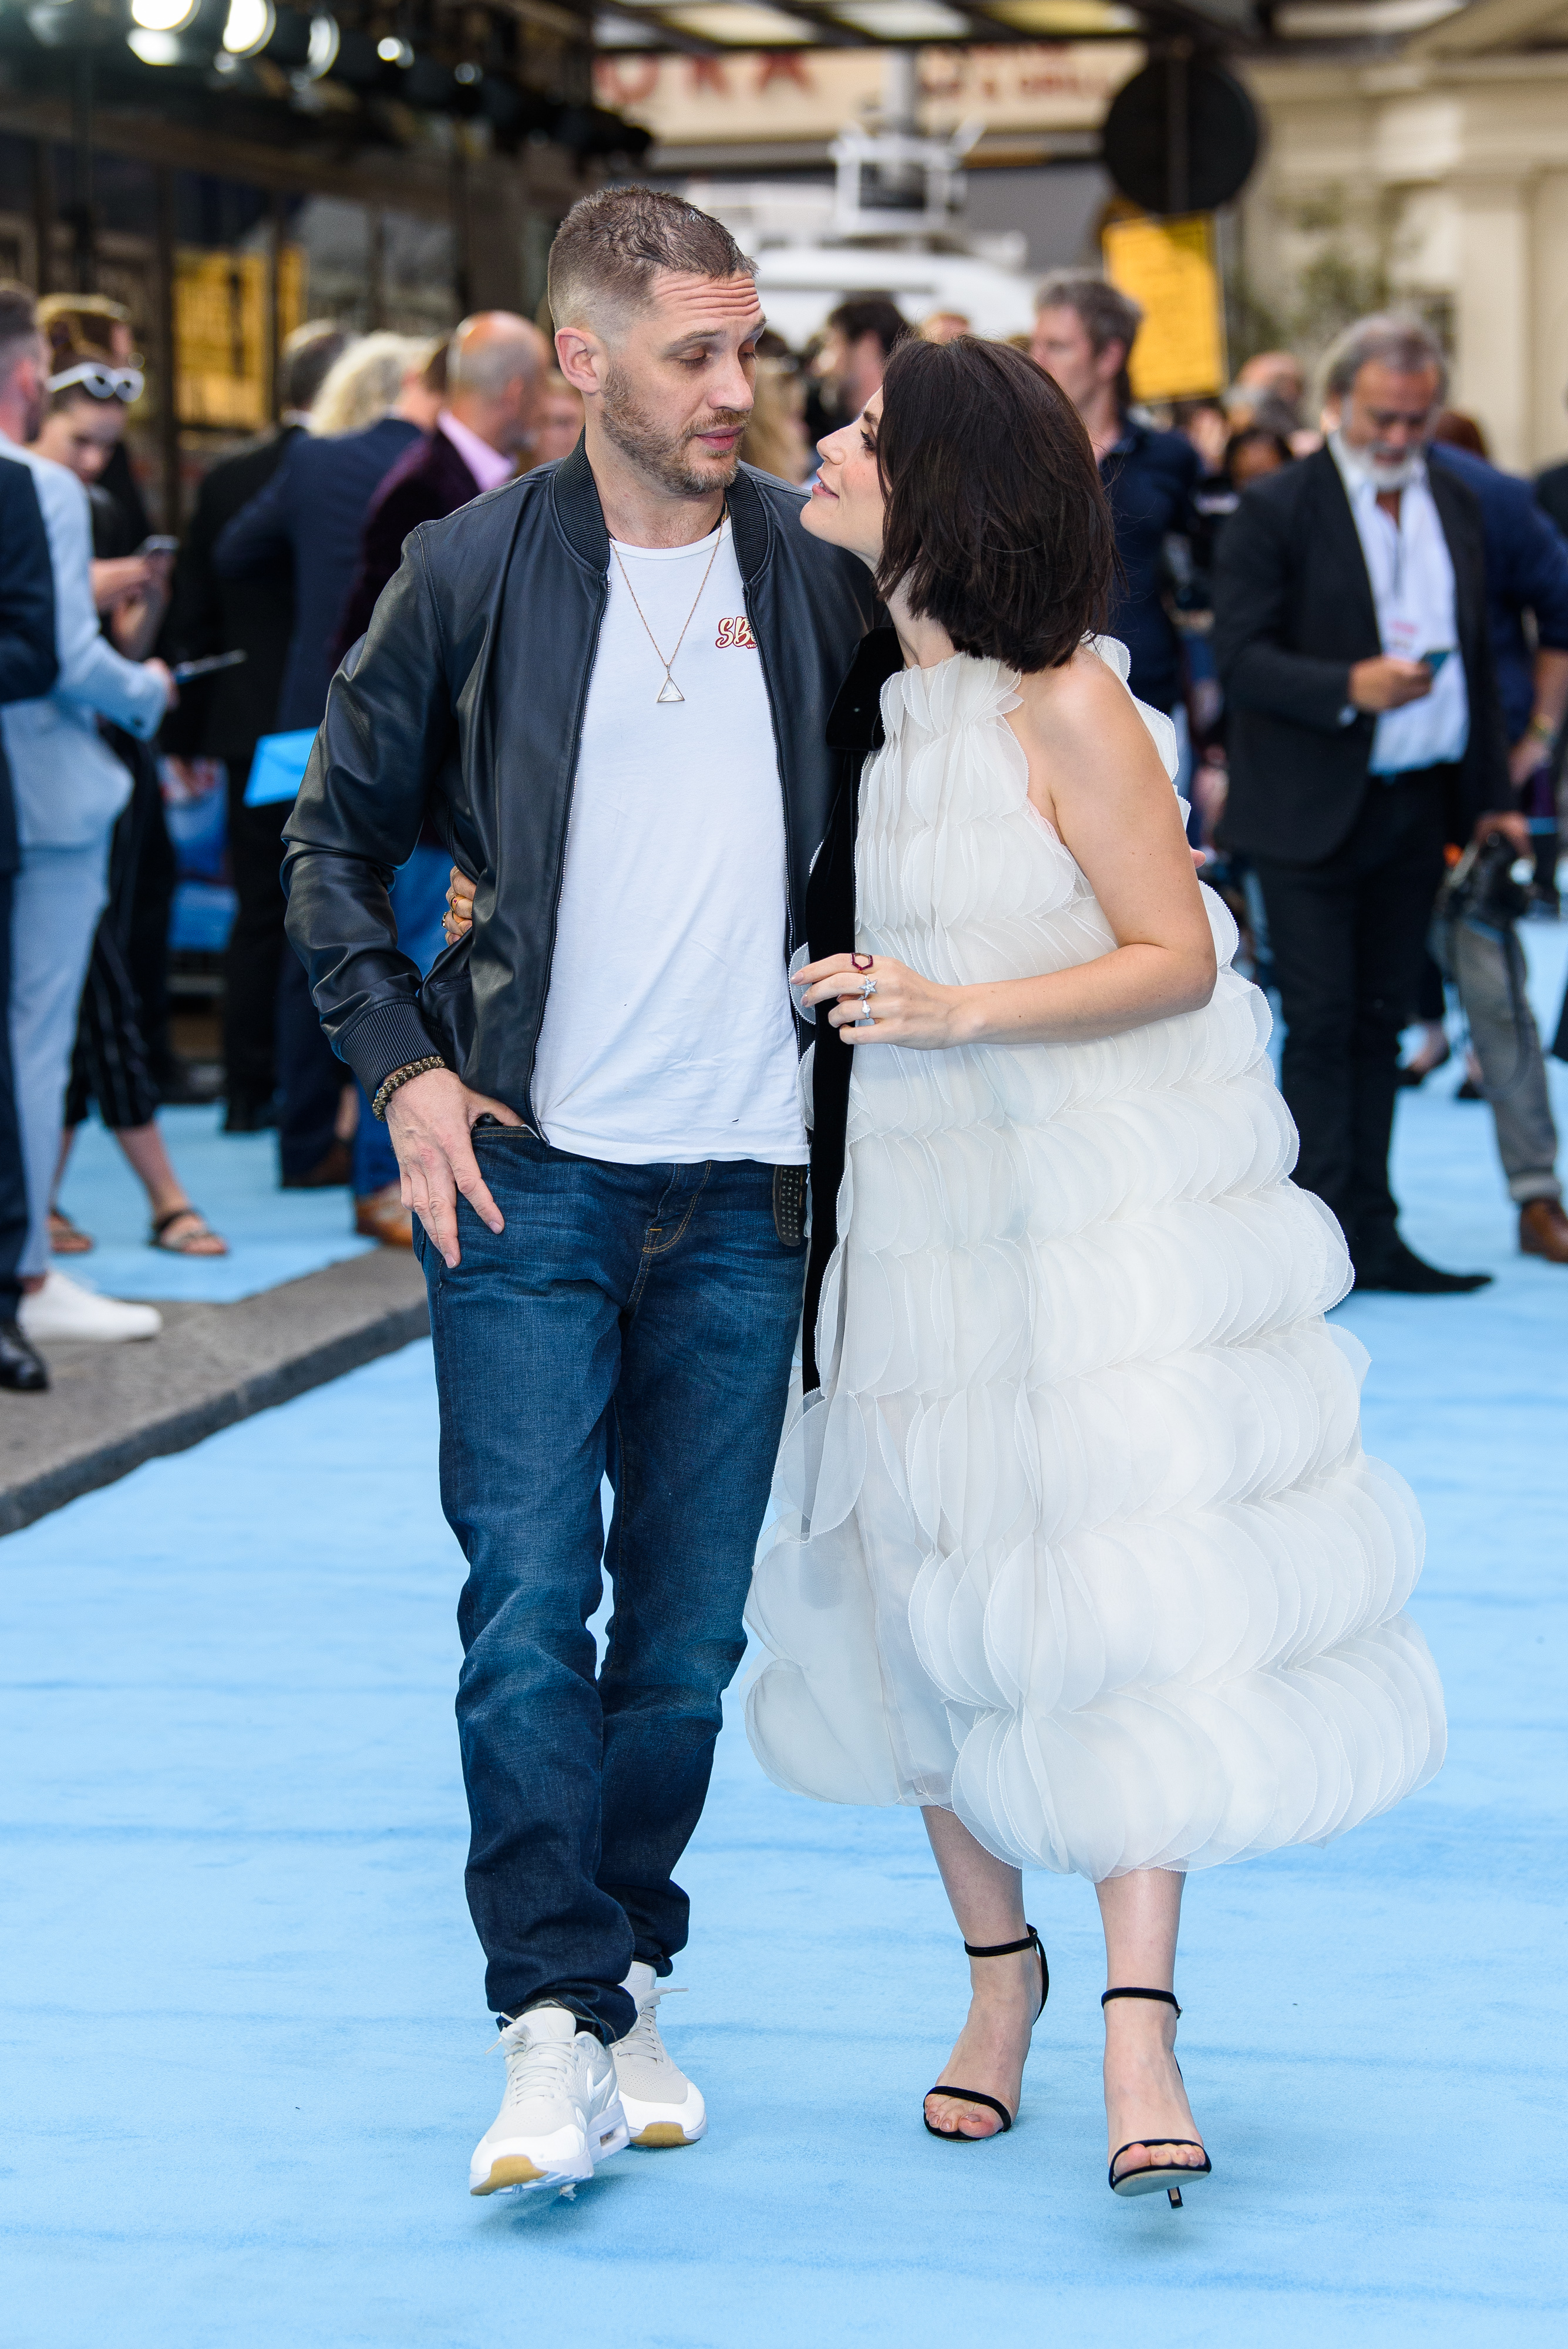 LONDON, ENGLAND - JULY 04: Charlotte Riley and Tom Hardy attend the 'Swimming With Men' UK Premiere at The Curzon Mayfair on July 4, 2018 in London, England. (Photo by Joe Maher/Getty Images)